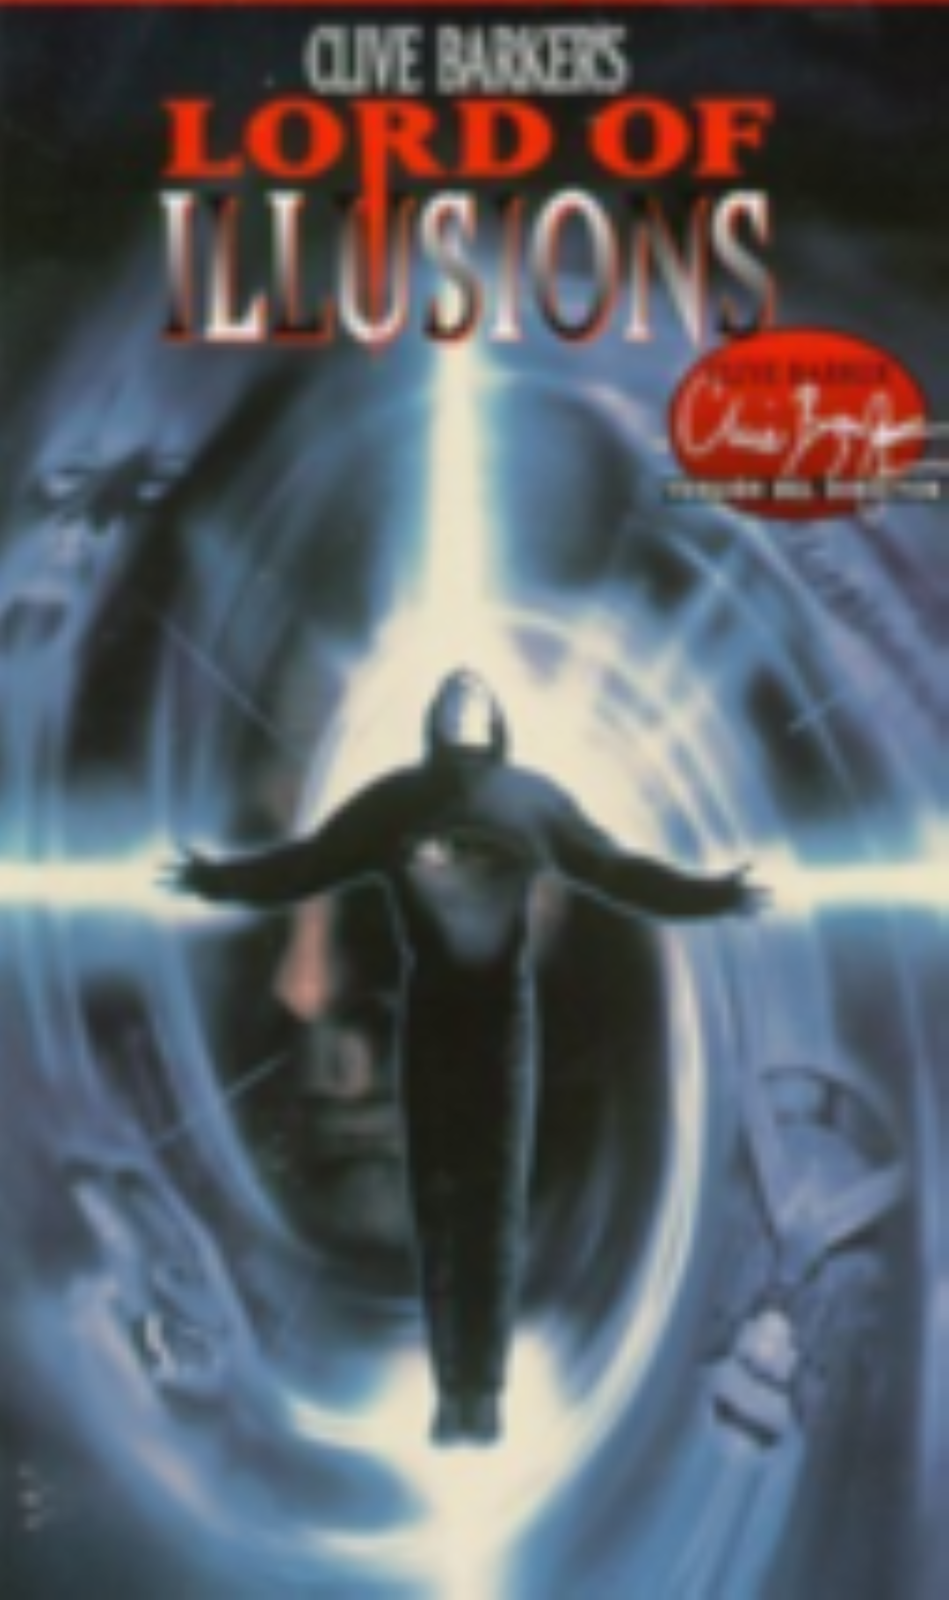 Lord of Illusions Vhs